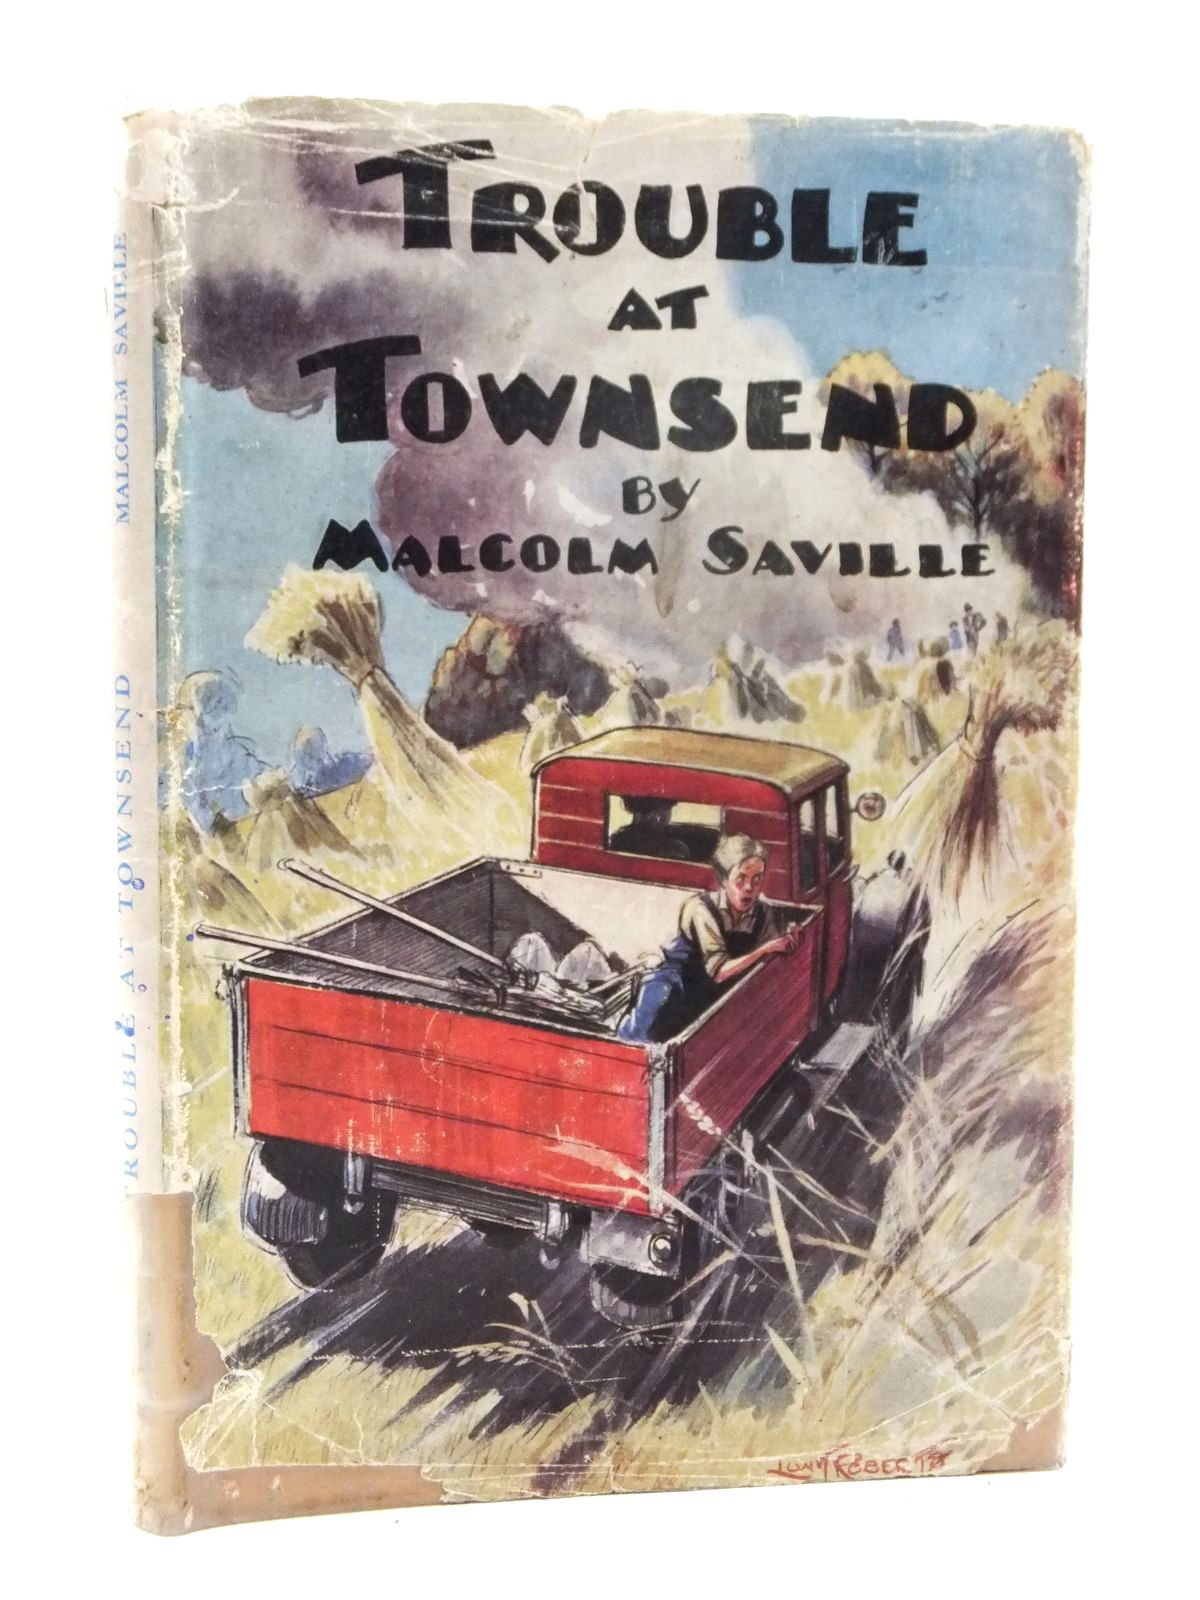 Photo of TROUBLE AT TOWNSEND written by Saville, Malcolm illustrated by Roberts, Lunt published by Transatlantic Arts Ltd. (STOCK CODE: 1609067)  for sale by Stella & Rose's Books